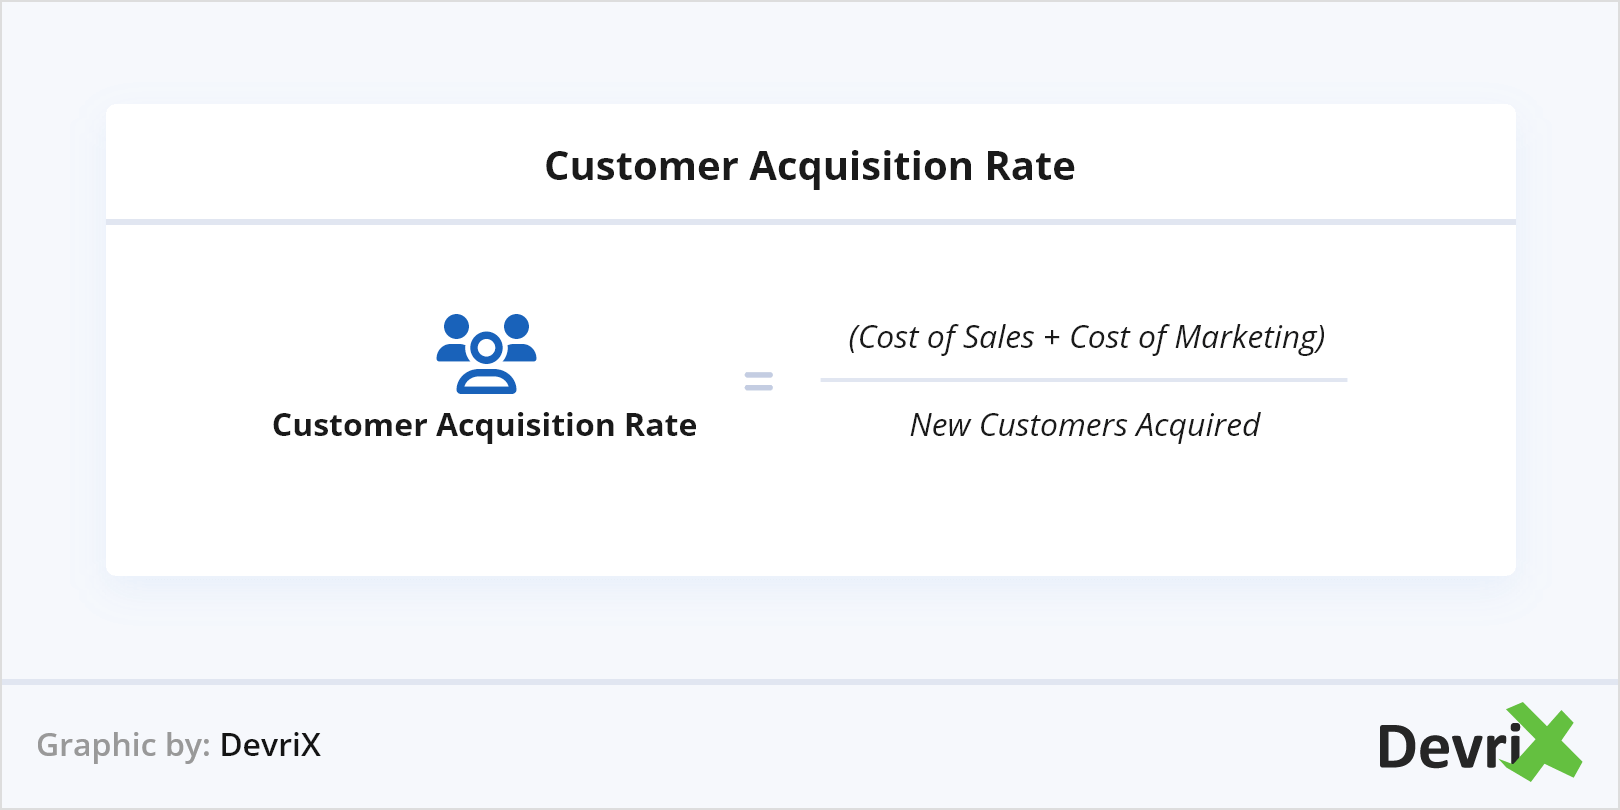 Customer Acquisition Rate